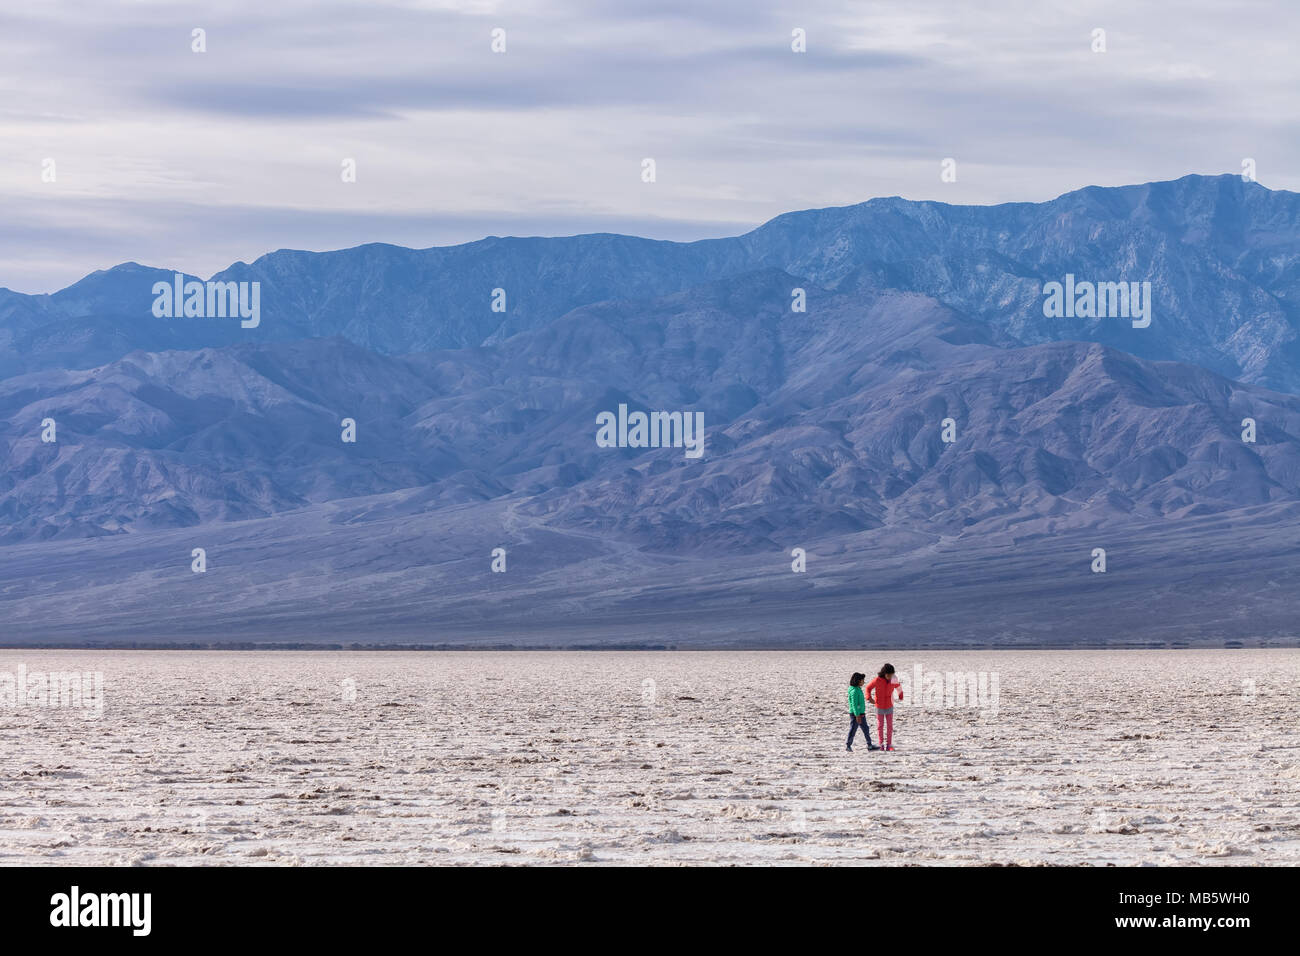 Two young kids were exploring the vast landscape at Badwater Basin in Death Valley National Park, California, United States. Stock Photo